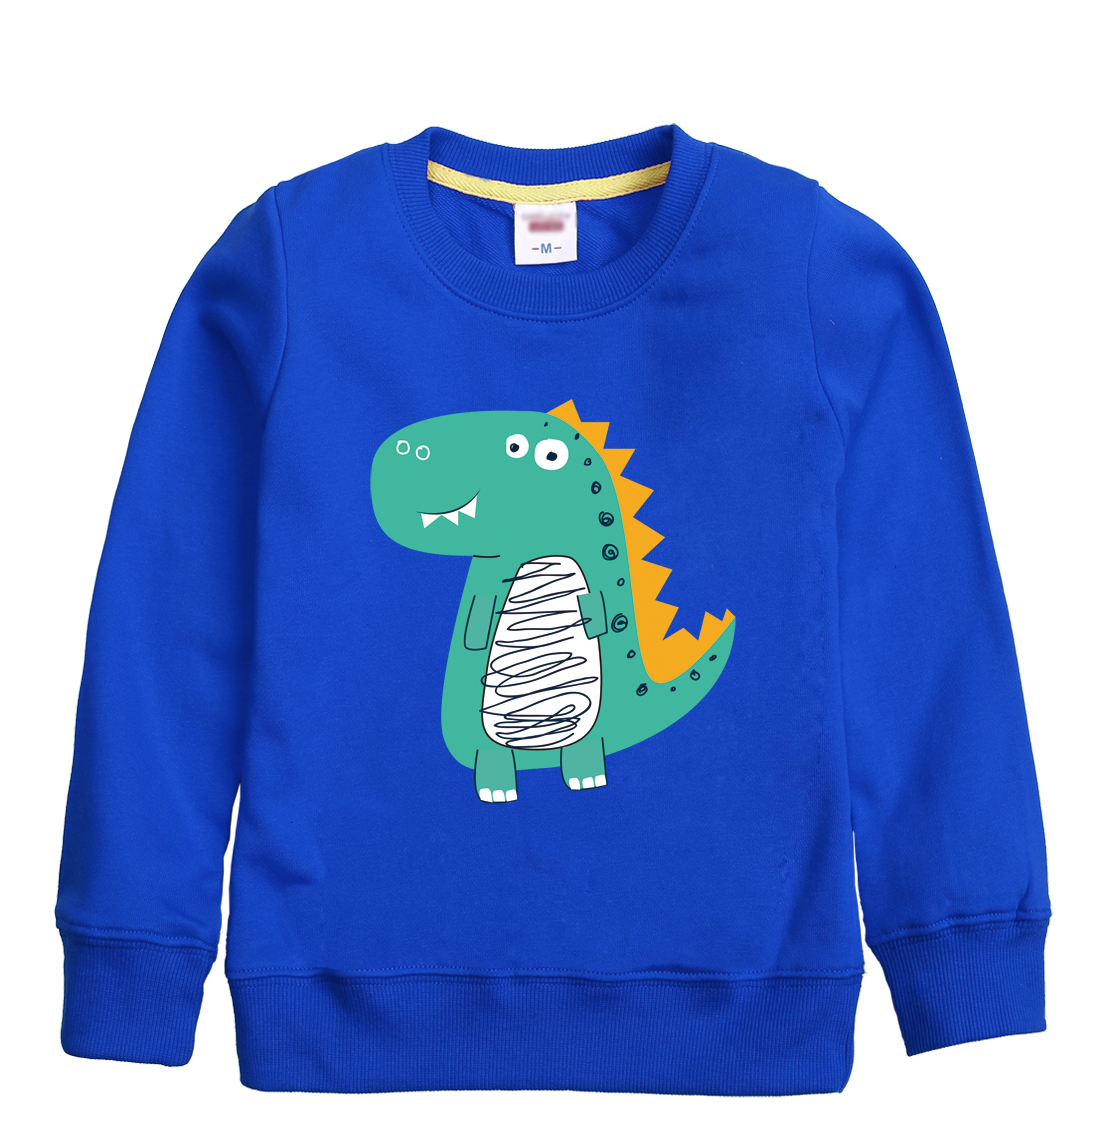 Dinosaur cartoon pattern printed 2018 new fashion winter full sleeve sweatshirt childrens hooded clothing design for girl & boy